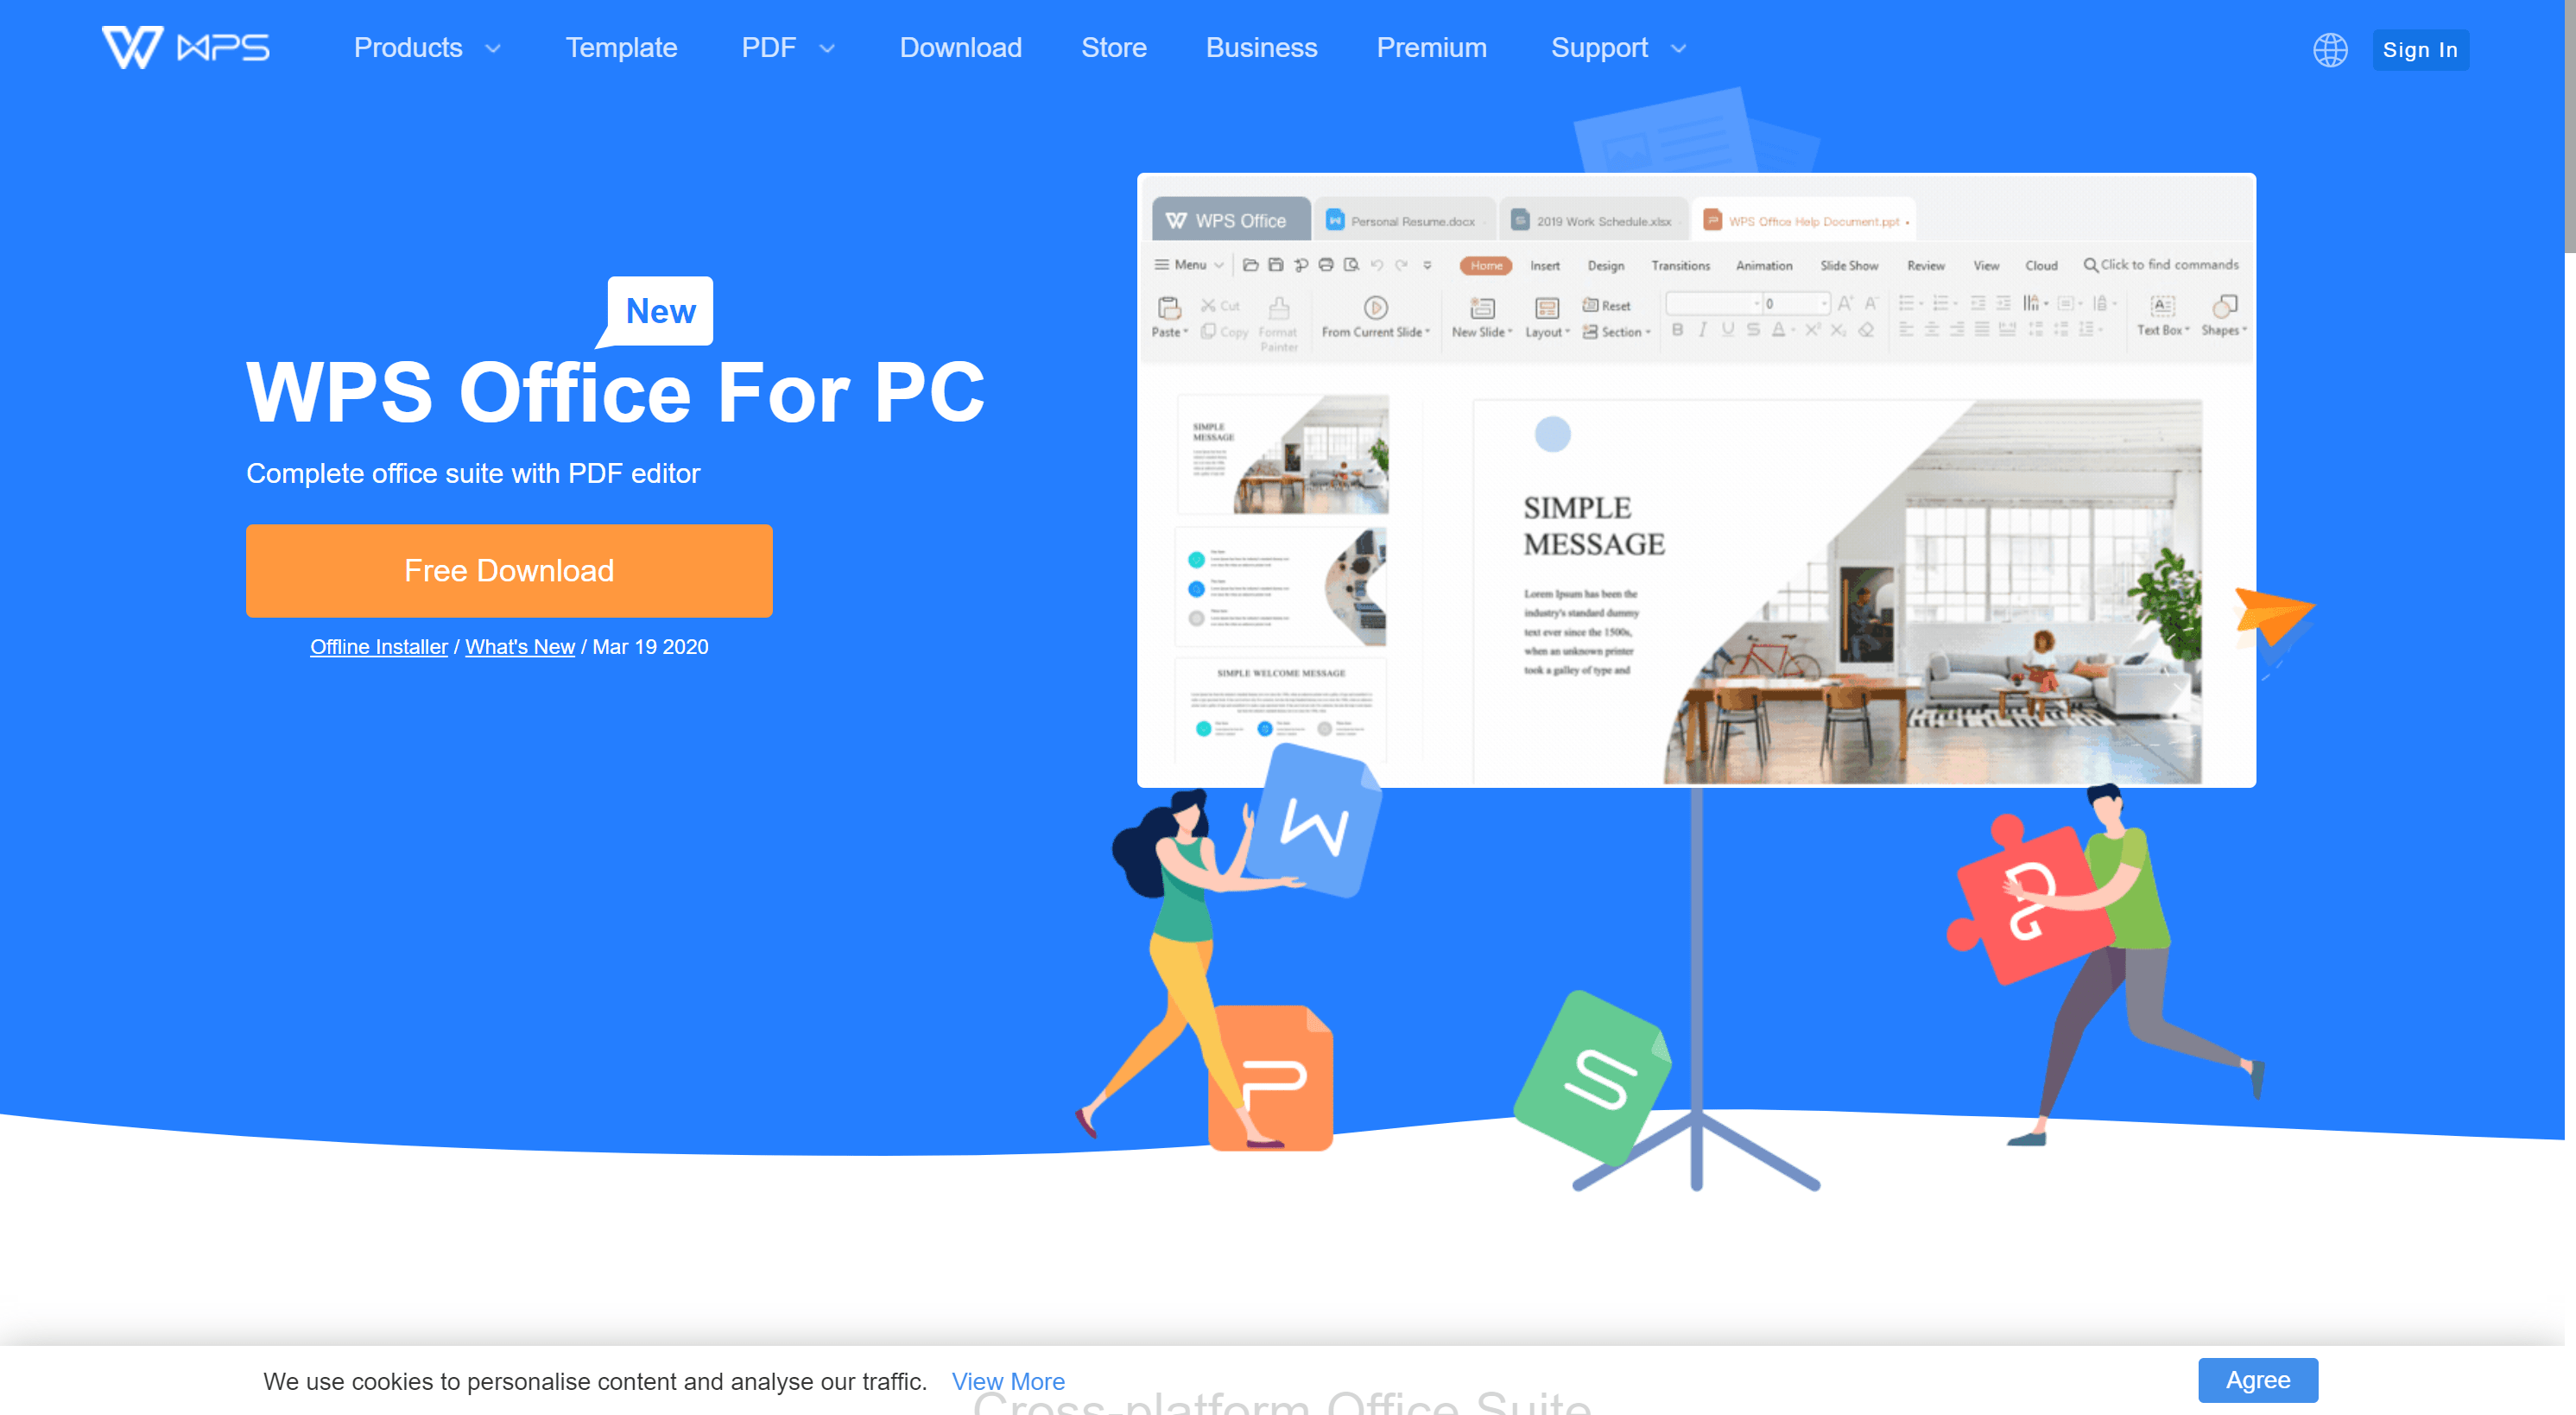 WPS office review for PC